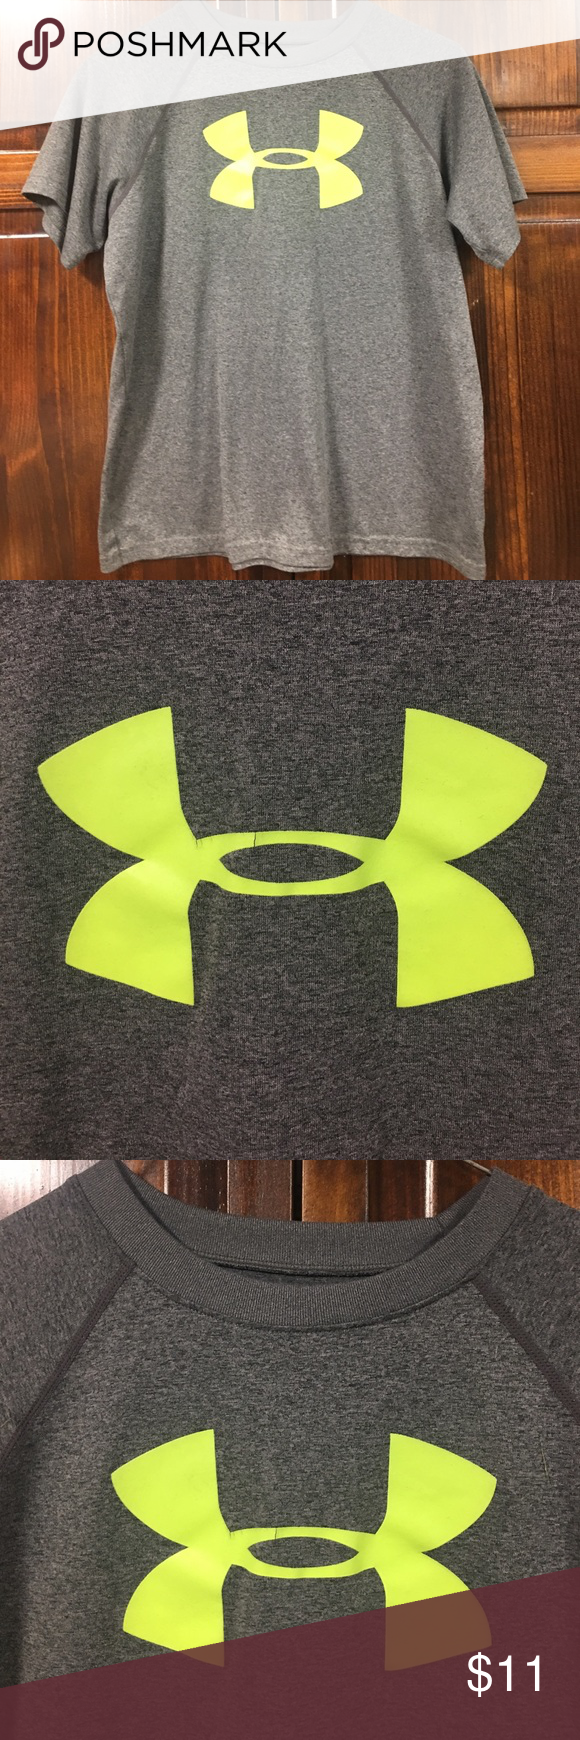 Boys Youth Large Under Armour Short Sleeve Shirt Armours Youth